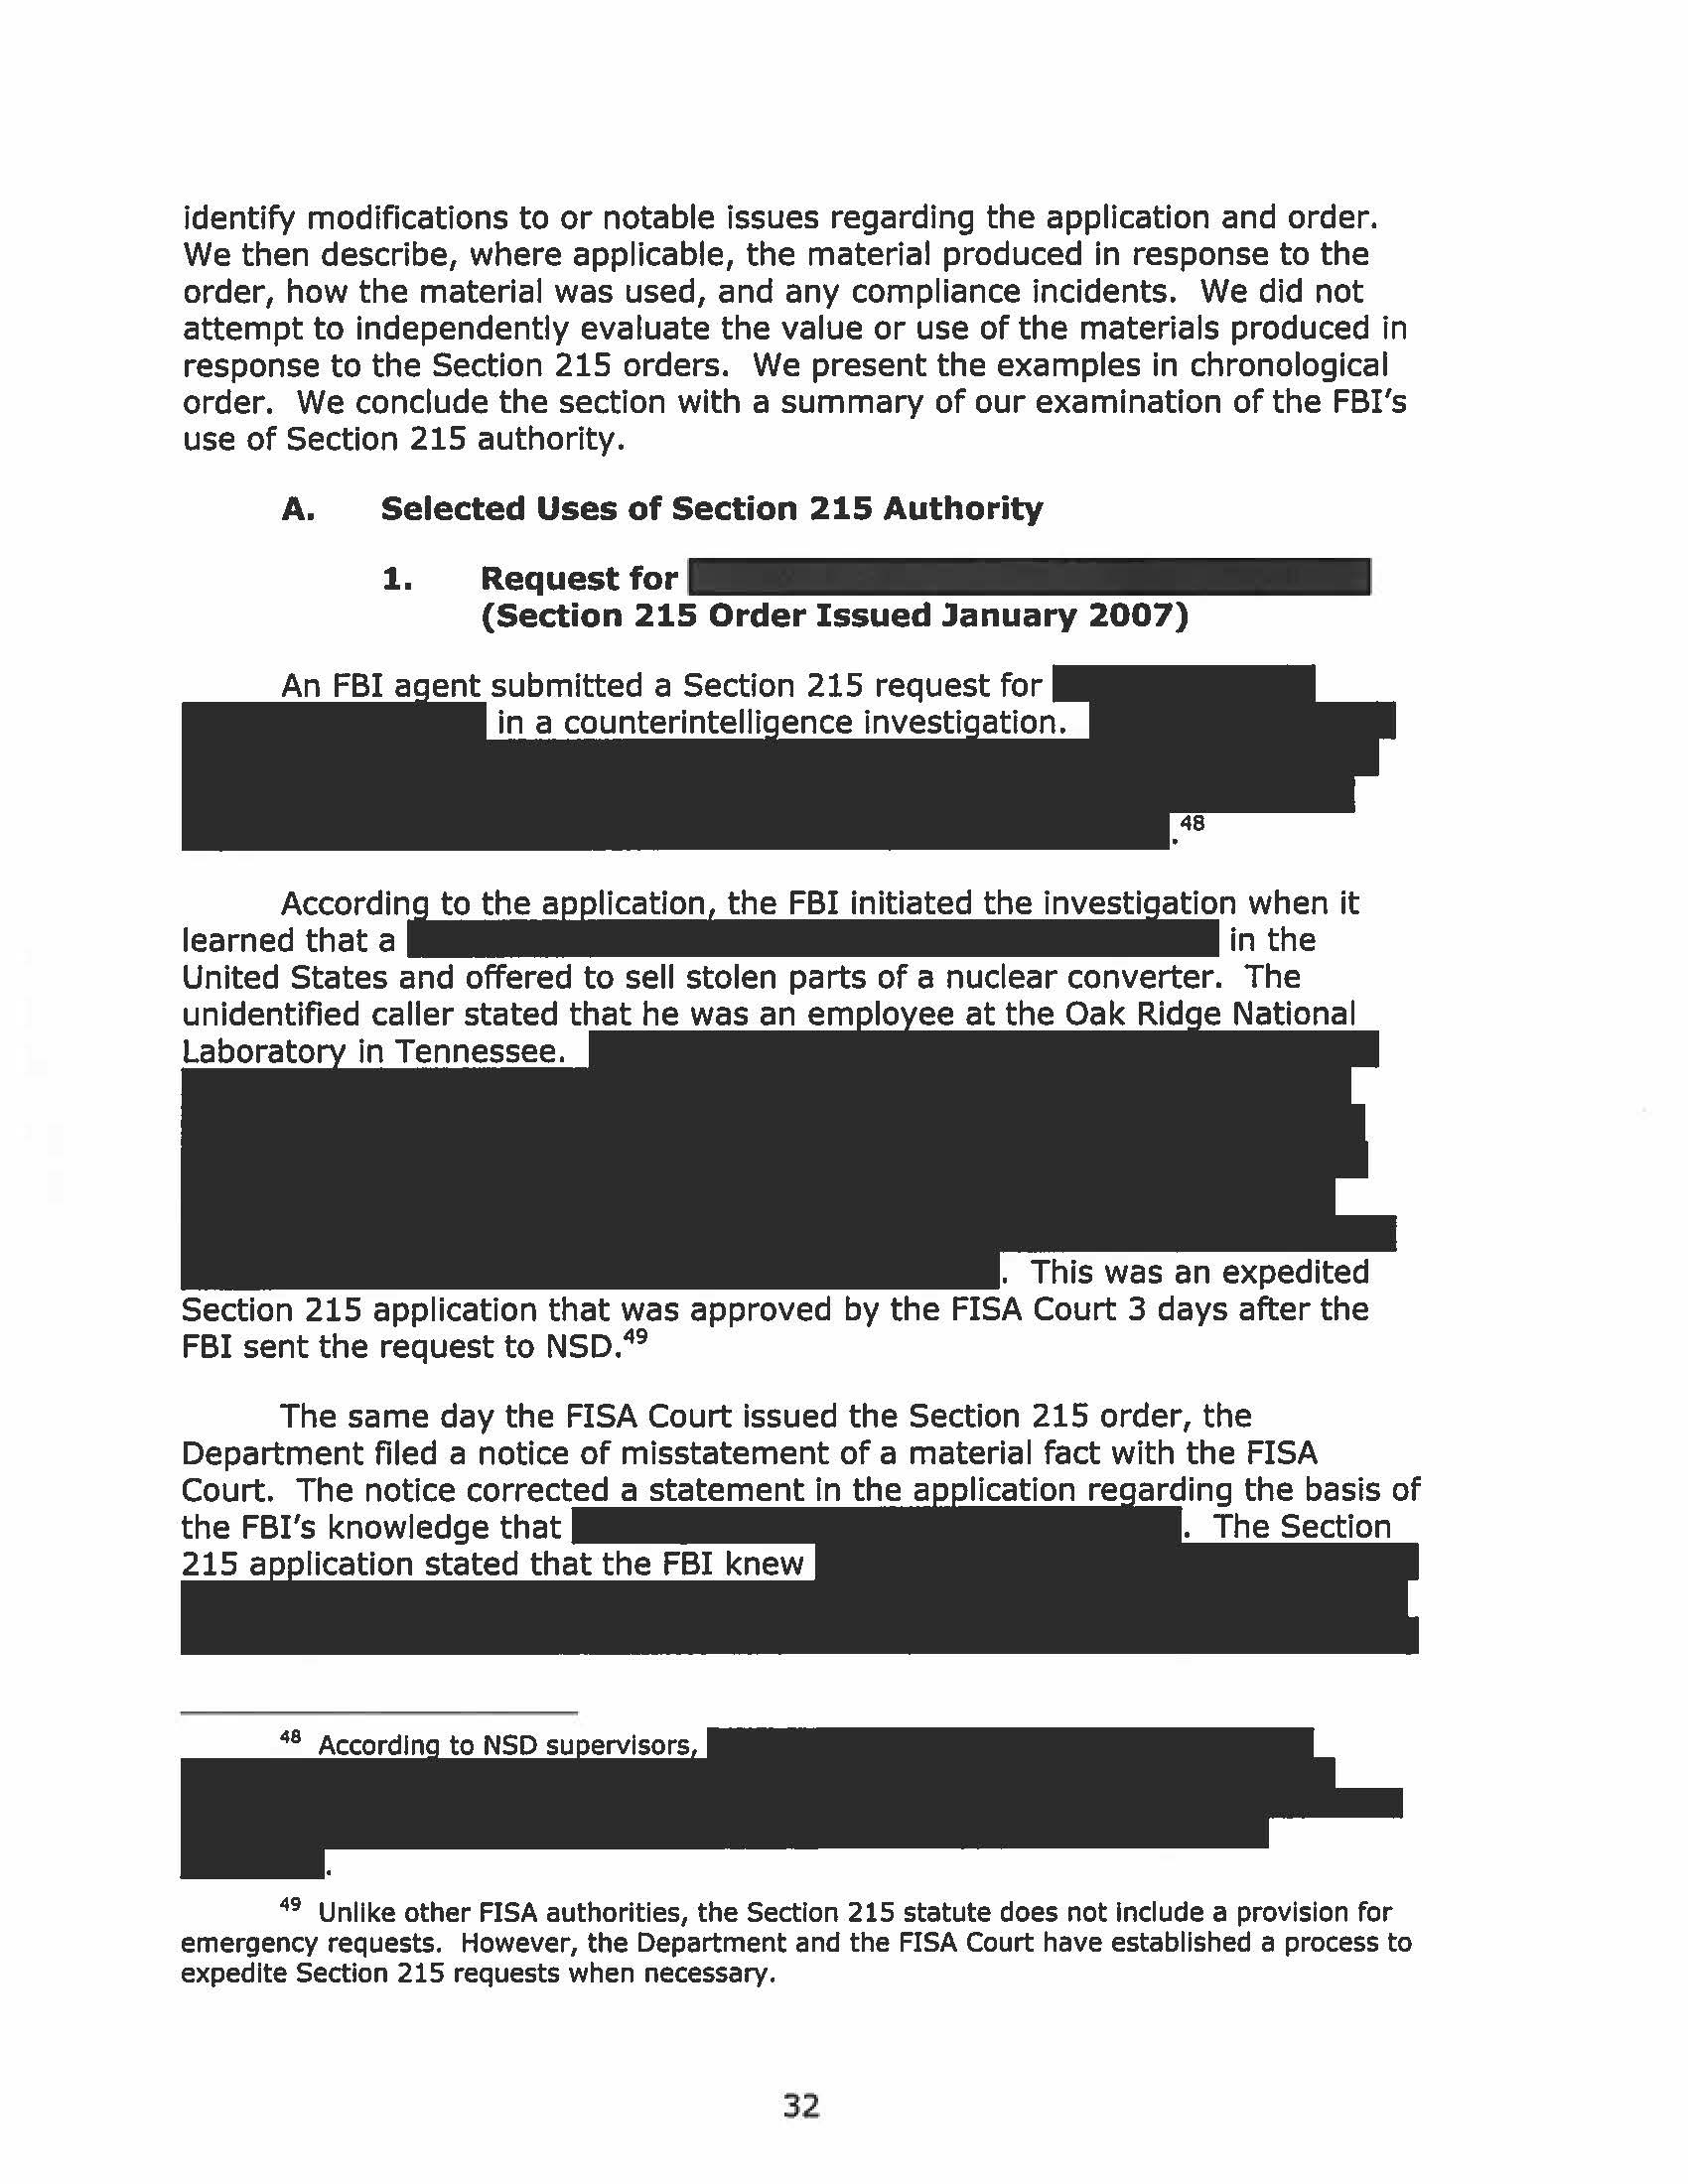 DoJ-FBI-Section215-2007-2009_Page_41